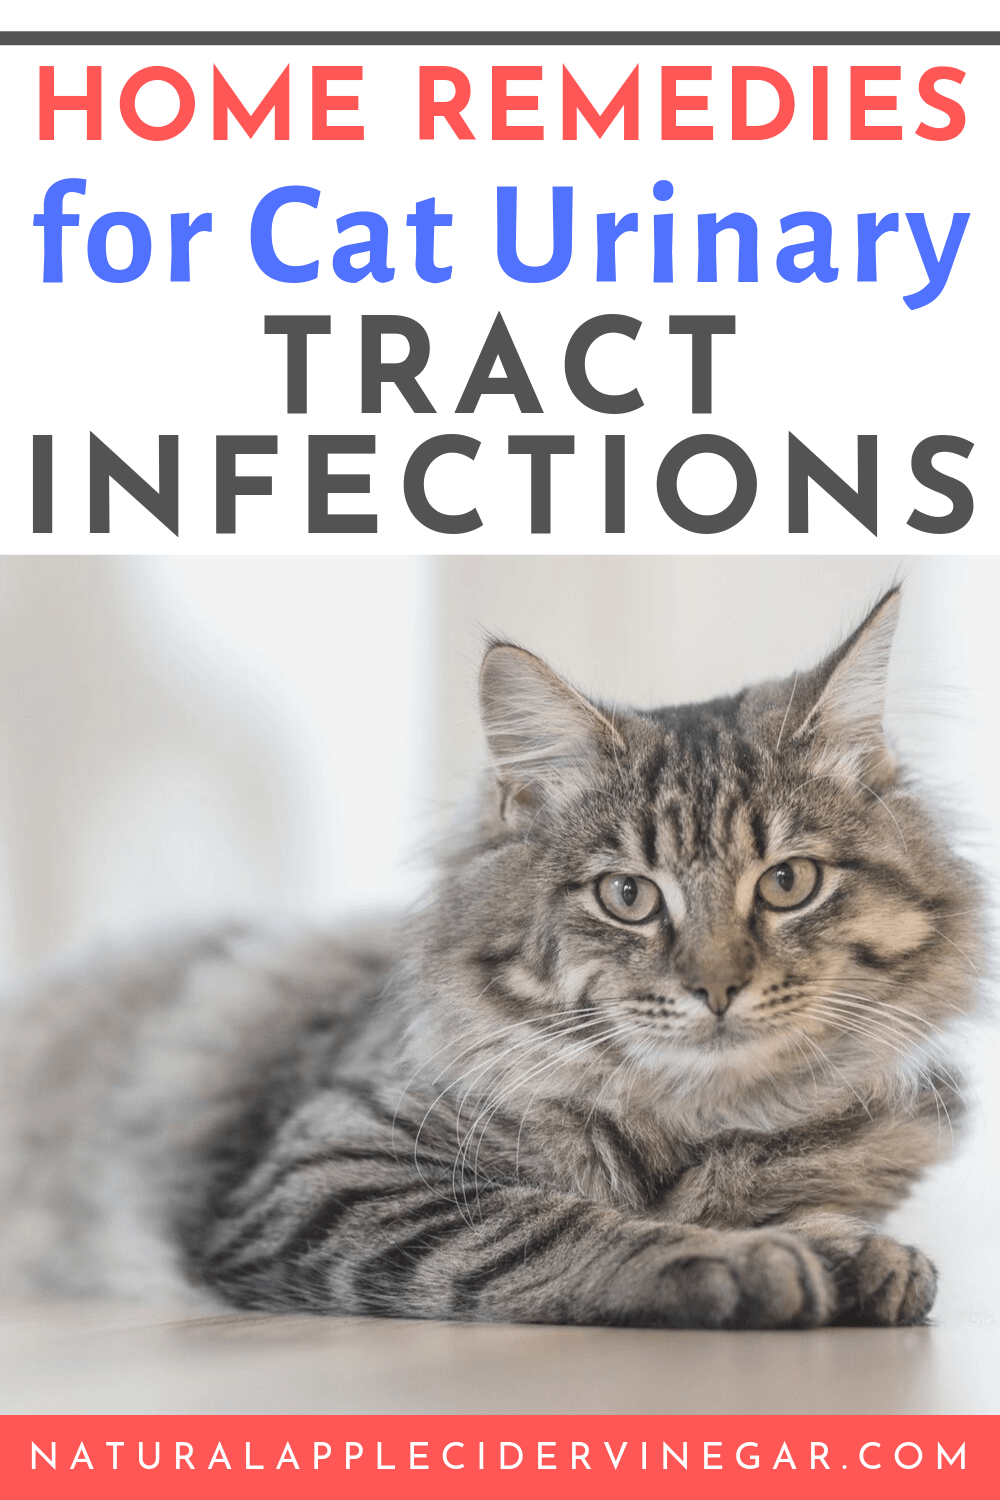 Apple Cider Vinegar Remedy for Cat Urinary Tract